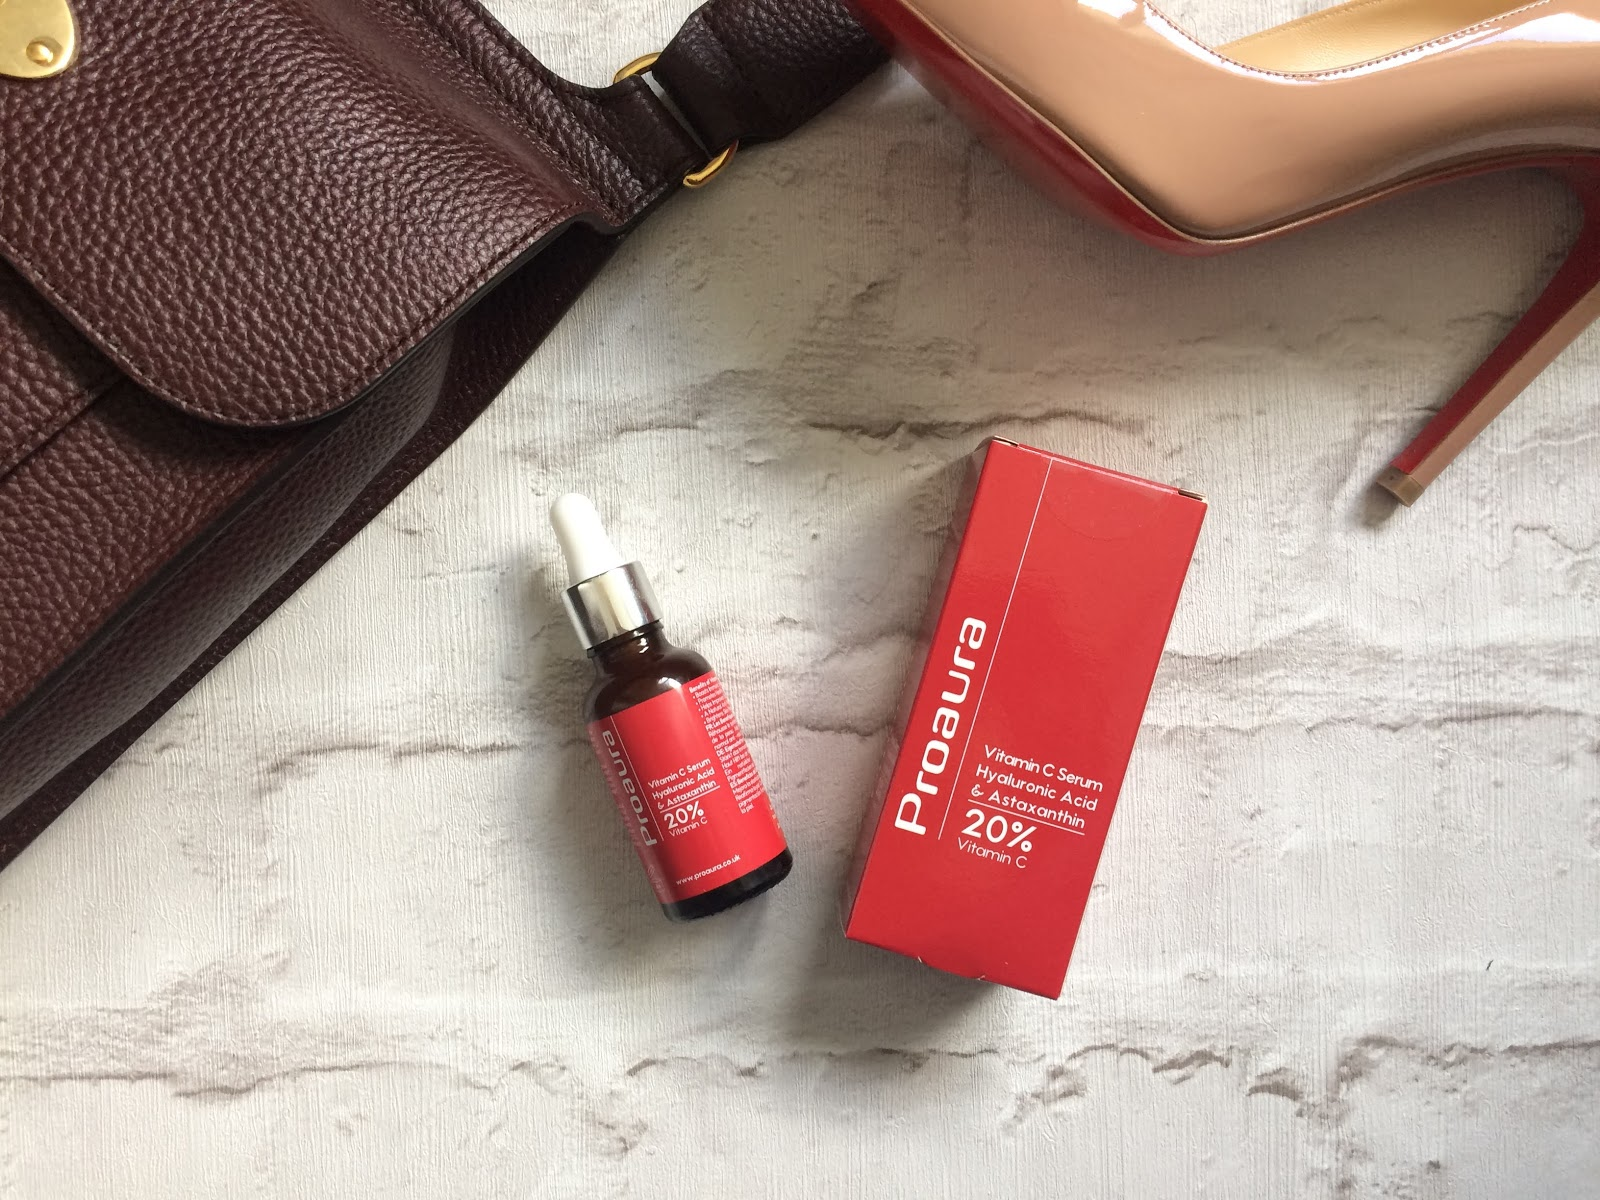 Proaura Vitamin C with Astaxanthin, Mulberry Antony bag in Oxblood Louboutinpiegalle